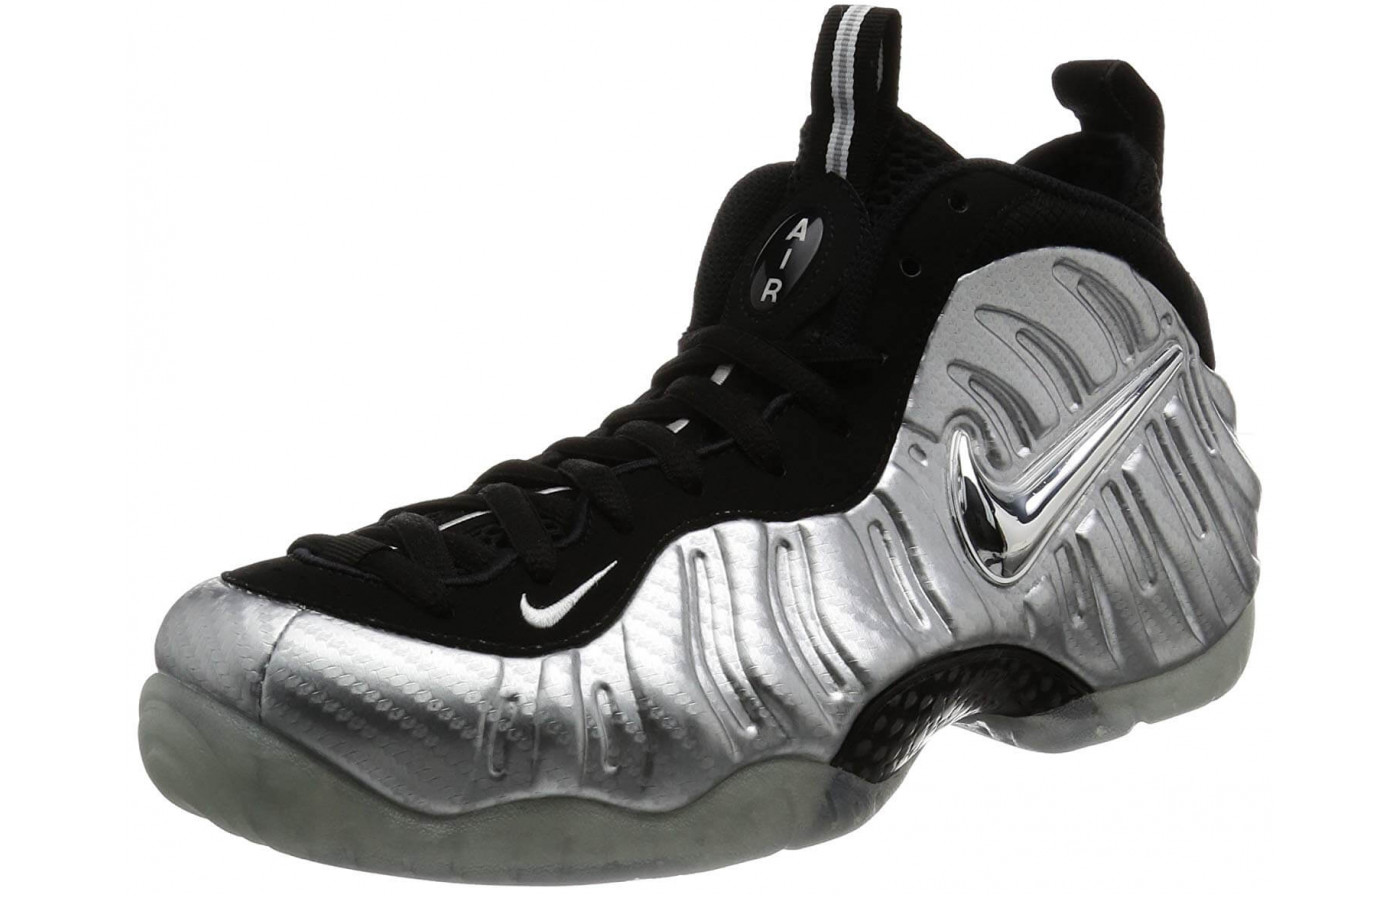 af9558eb3f3 Nike Air Foamposite Pro - To Buy or Not in Mar 2019